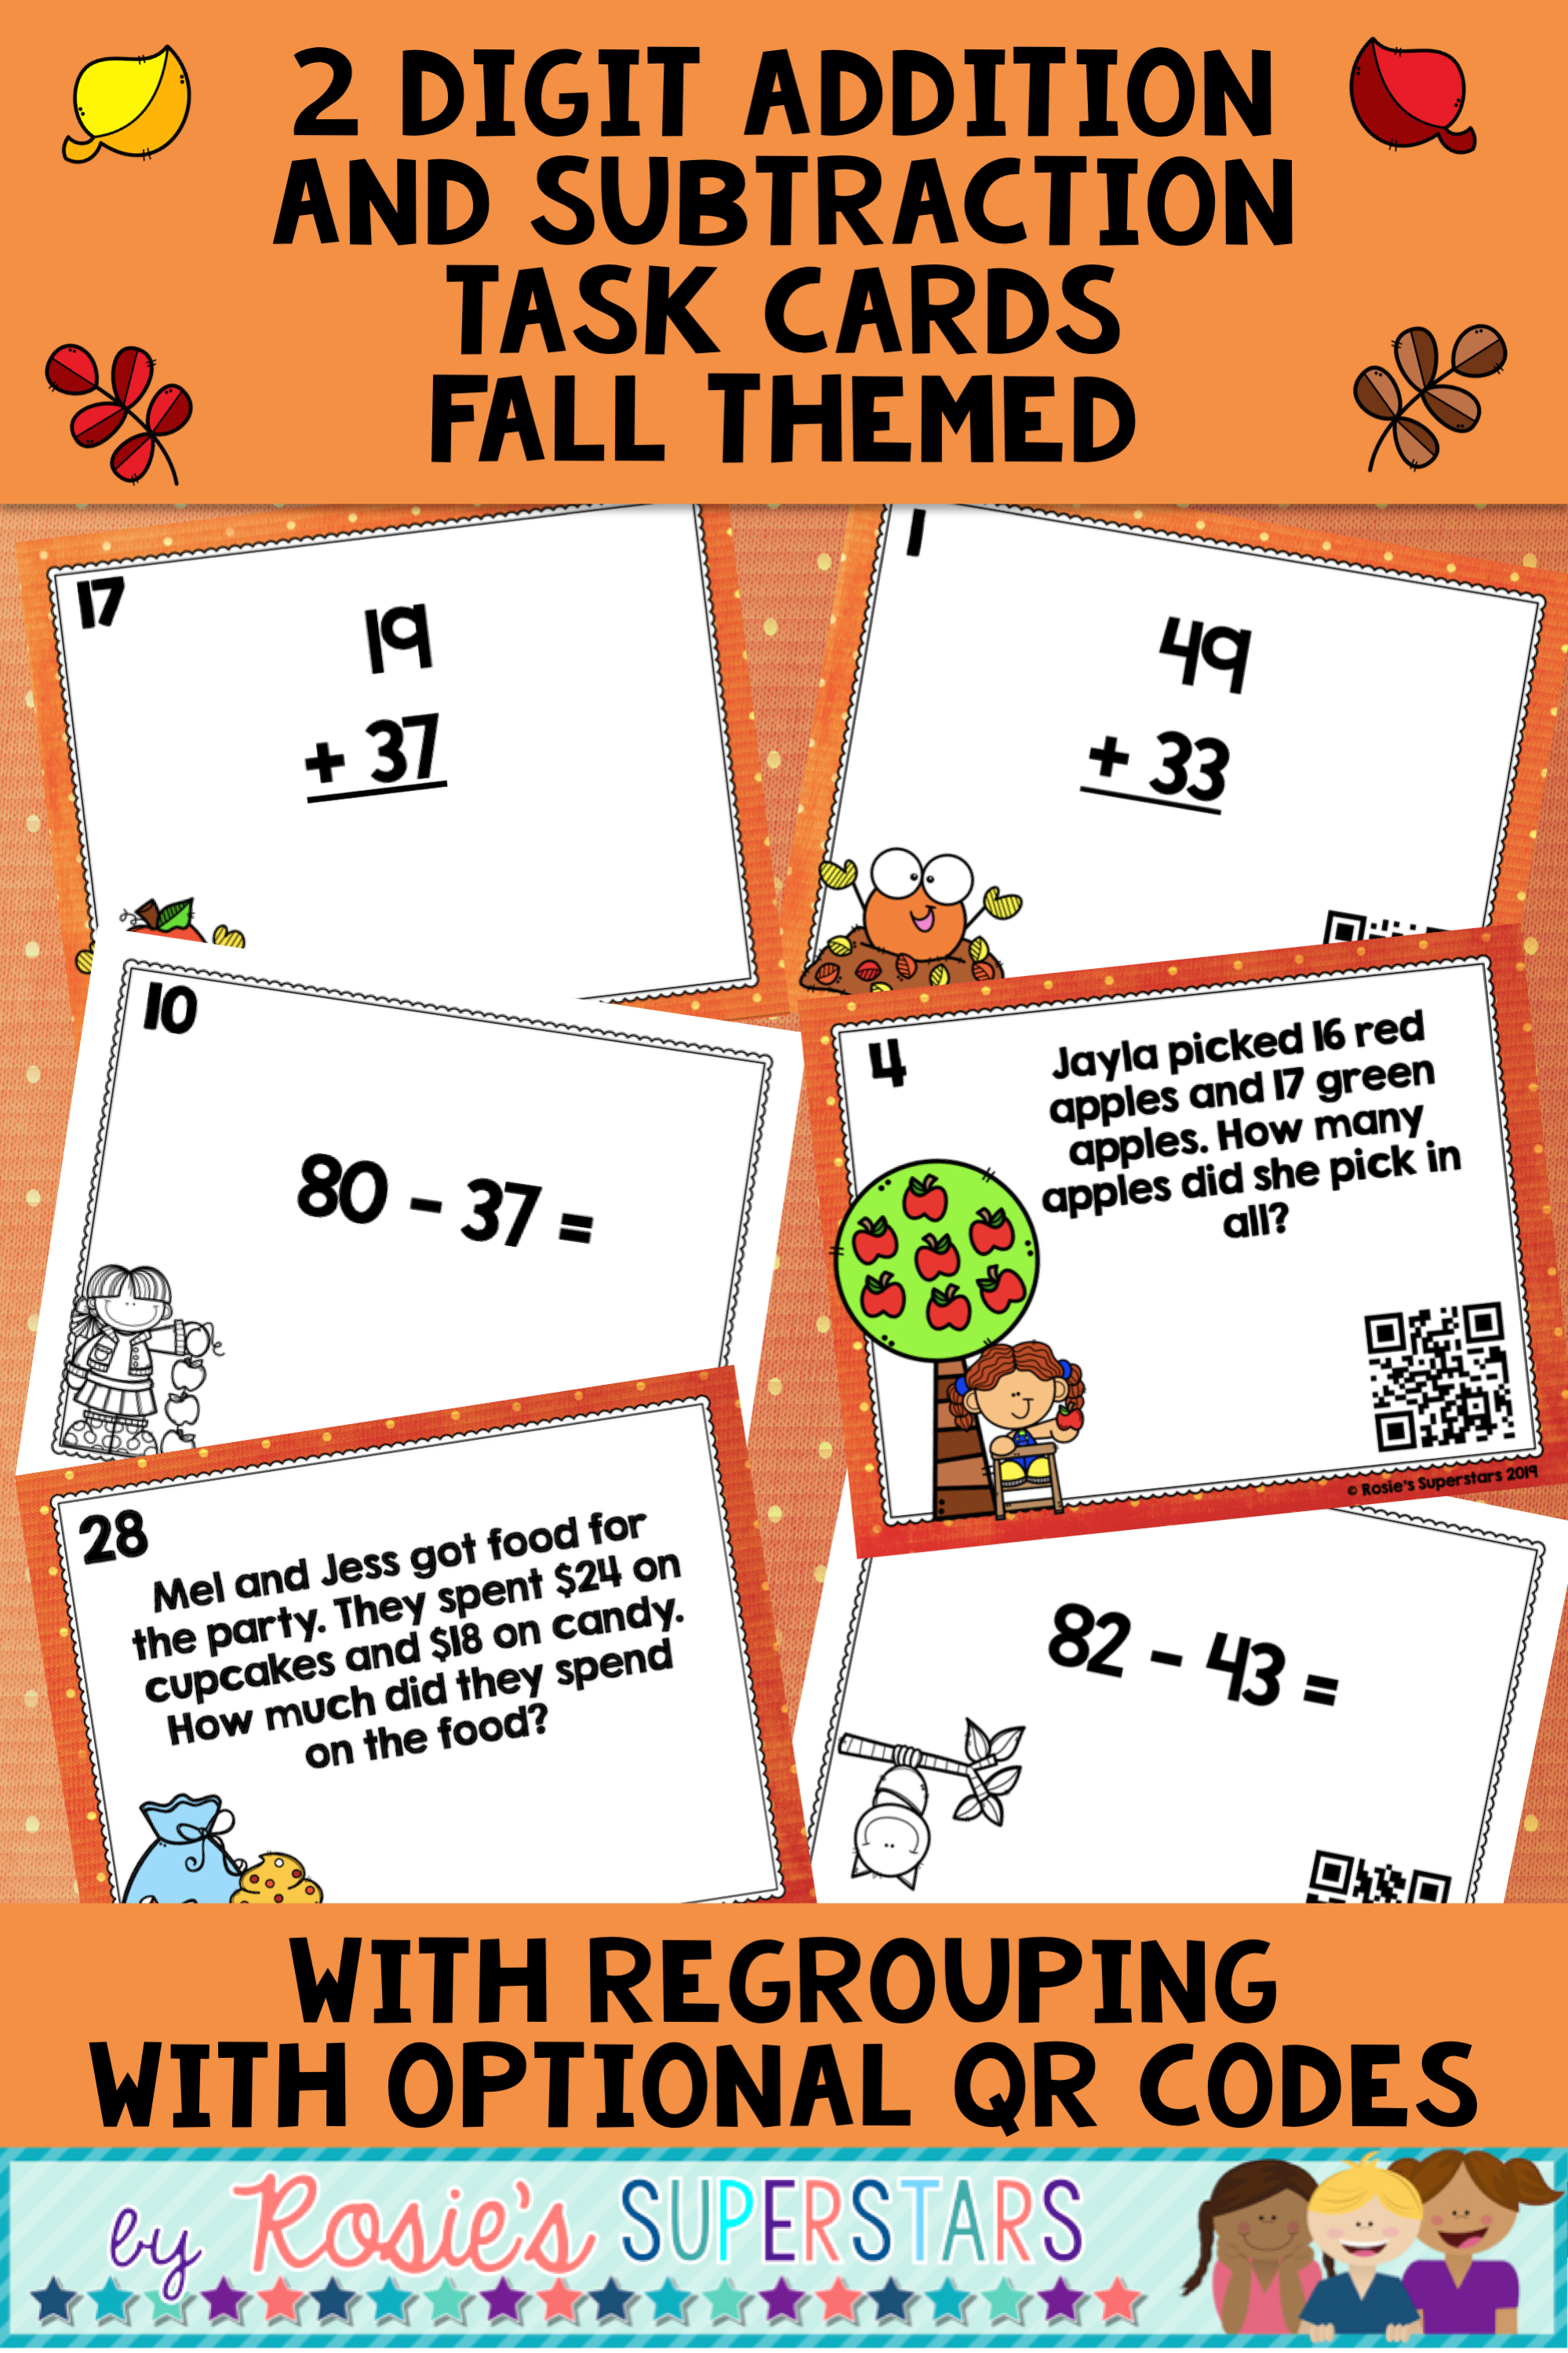 Fall Themed 2 Digit Addition And Subtraction With